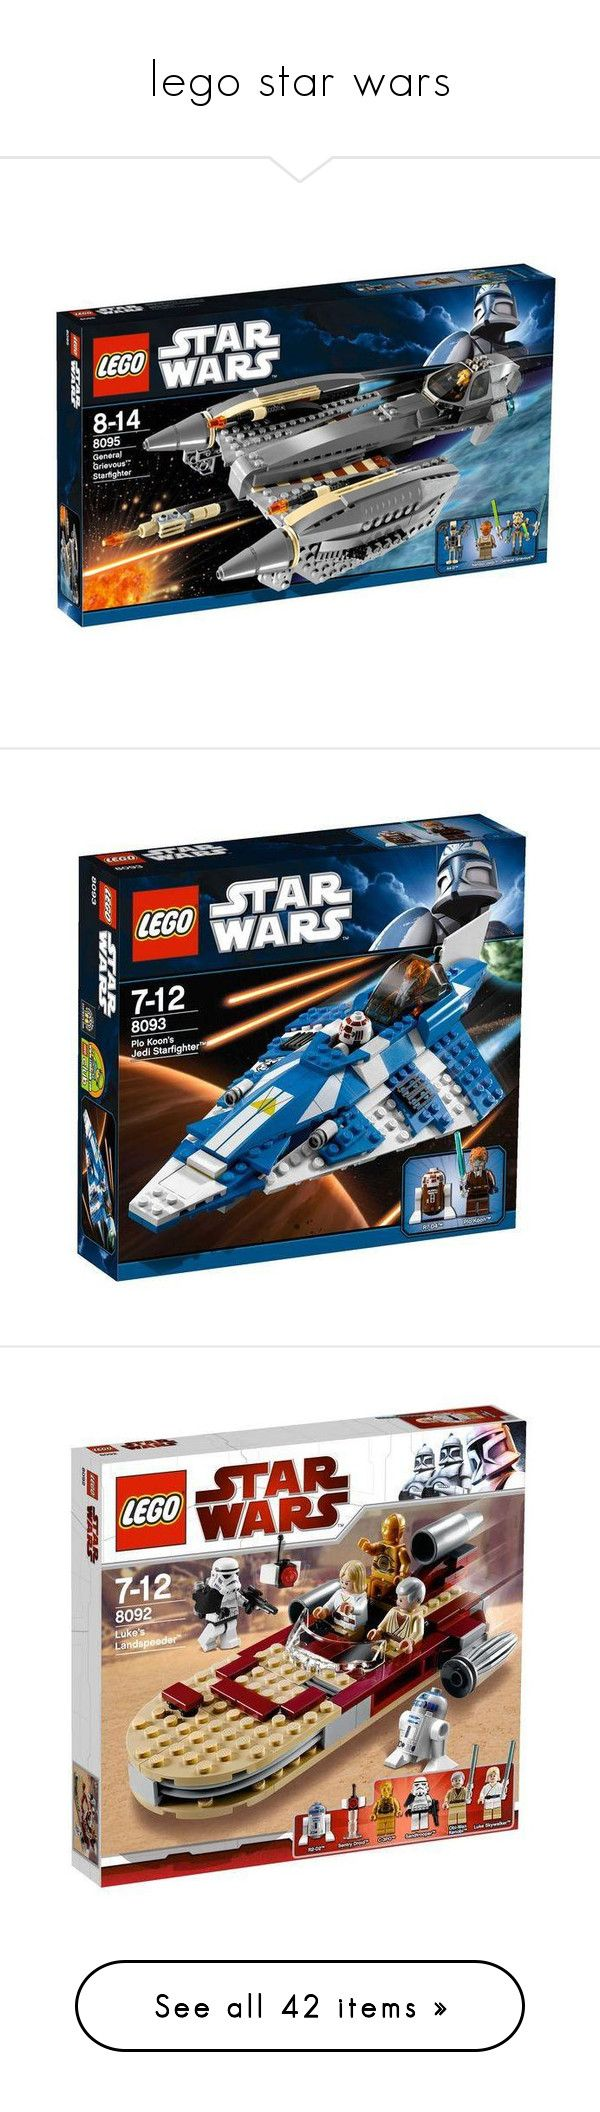 """""""lego star wars"""" by alenaglush ❤ liked on Polyvore featuring home, home decor, holiday decorations, star wars advent calendar, star wars holiday decorations, star wars home accessories, star wars home decor, star wars holiday decor, kitchen & dining and food storage containers"""